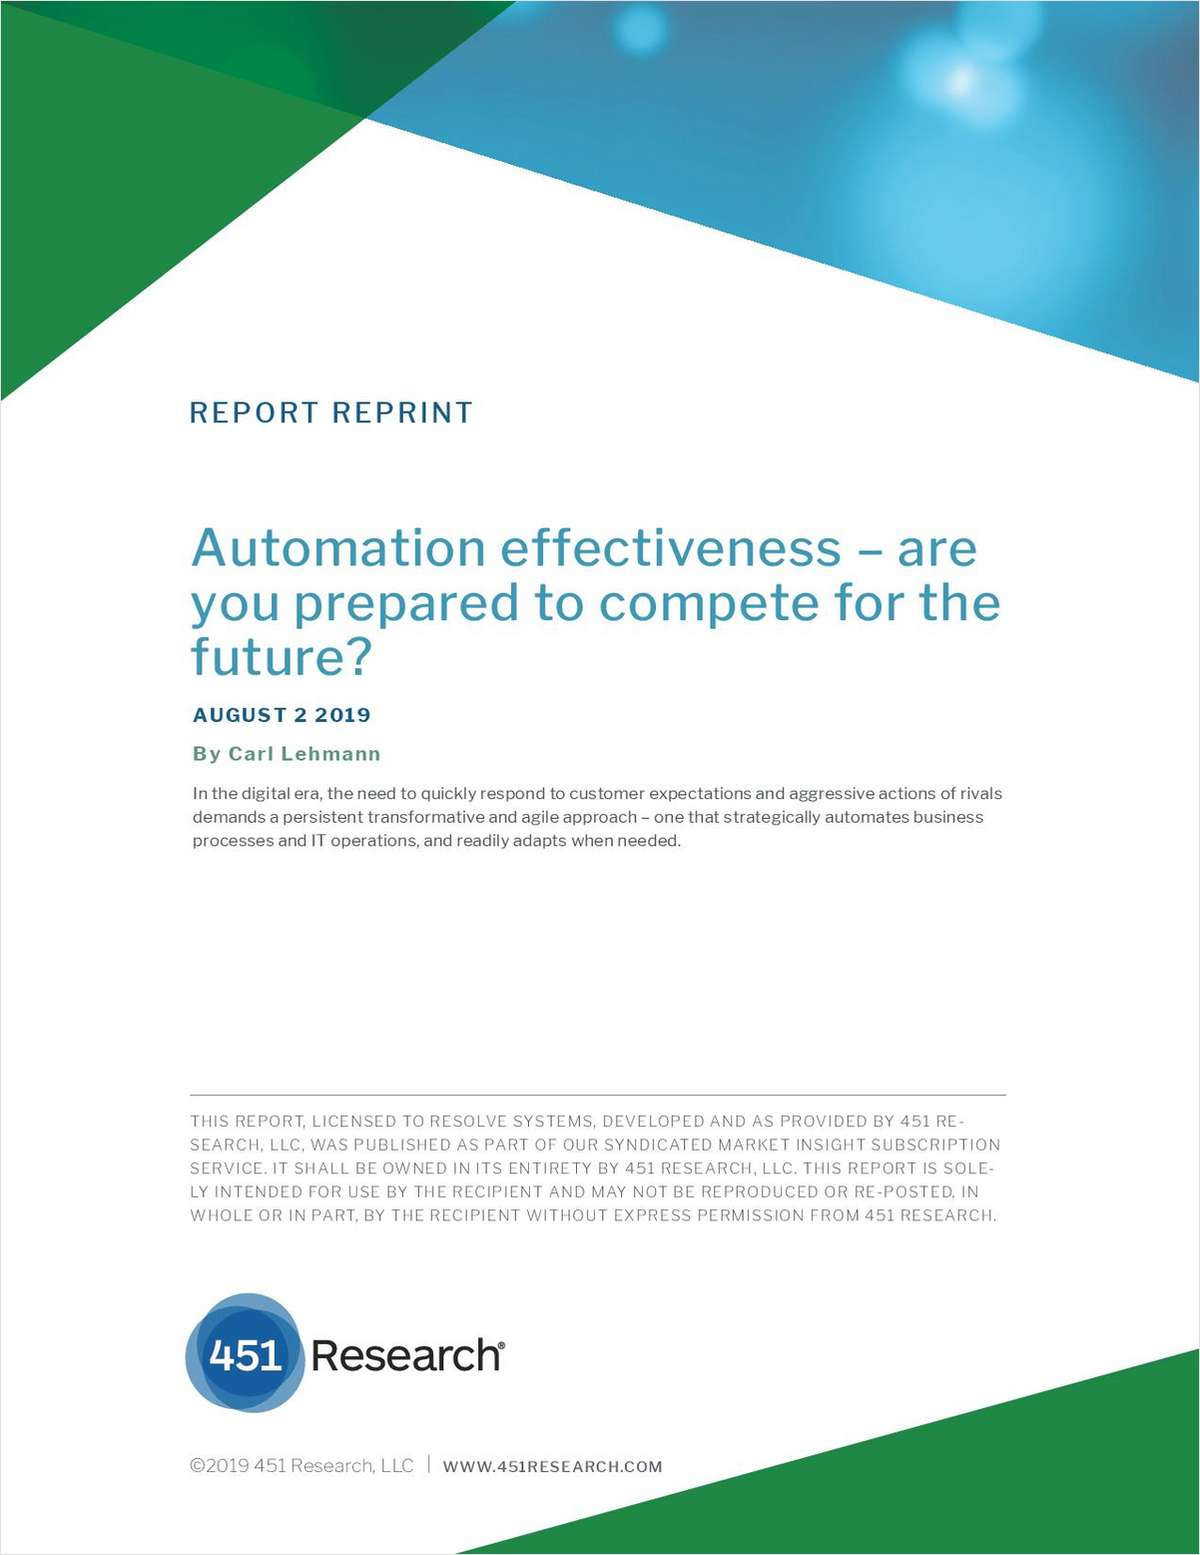 IT Automation effectiveness - are you prepared to compete for the future?